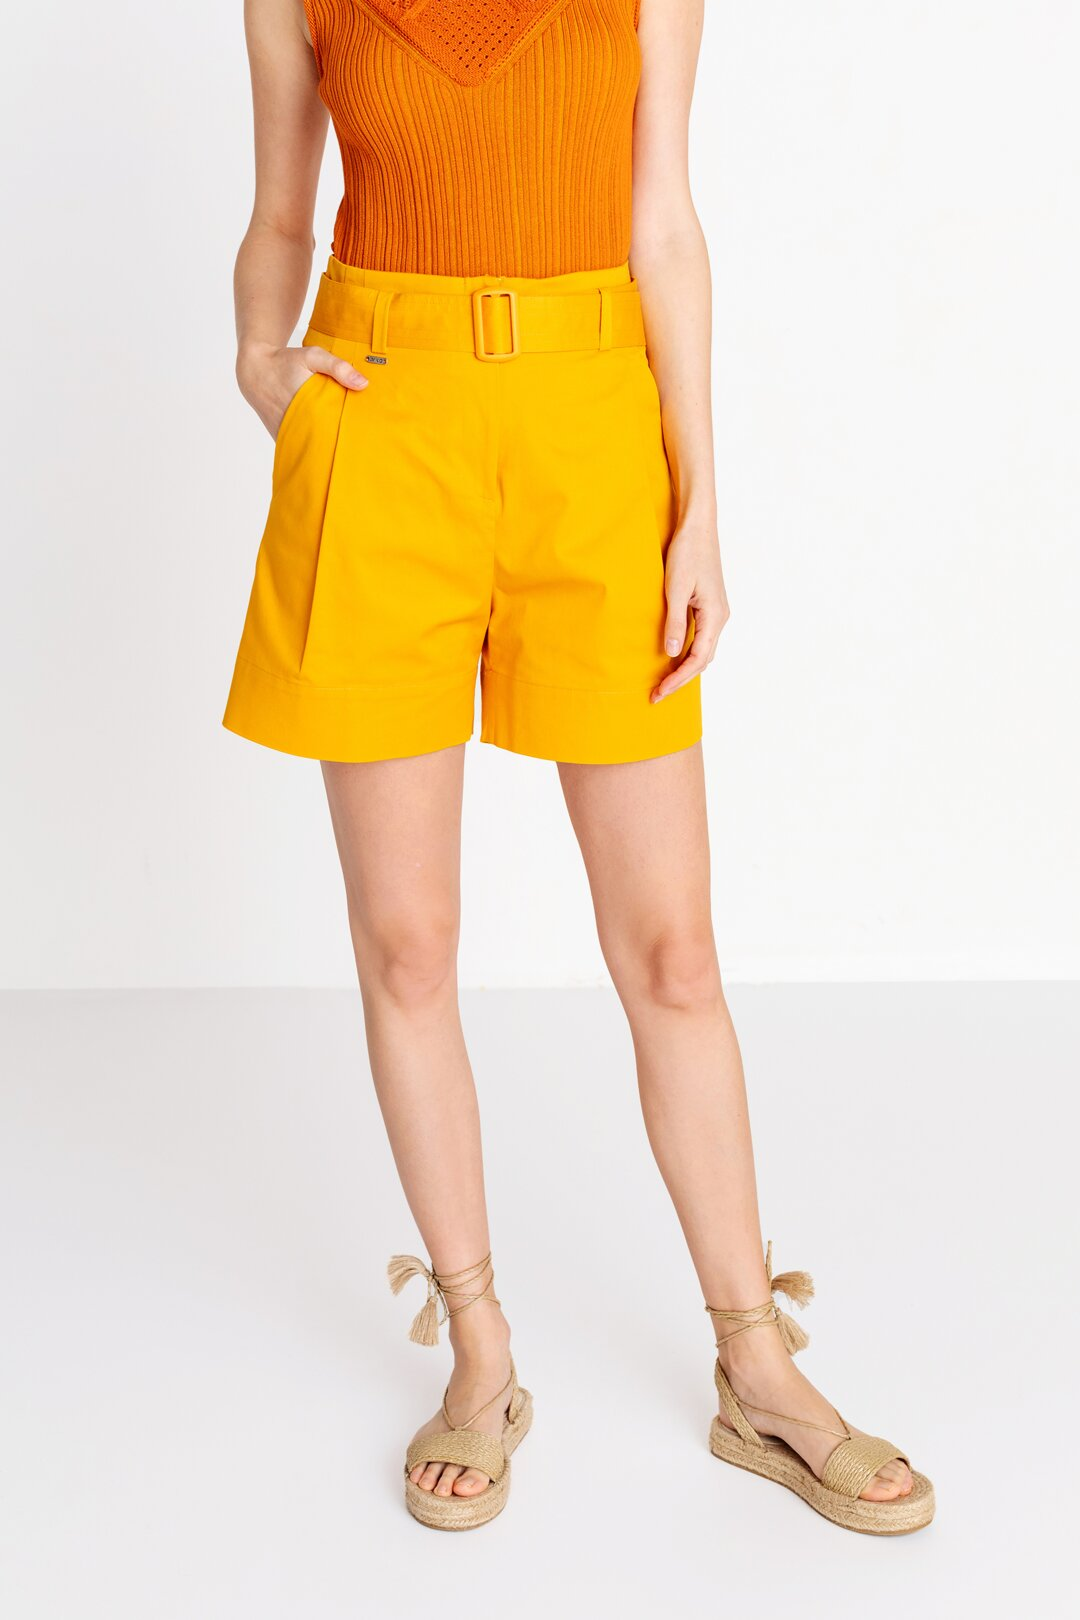 outfit-7c8a4254